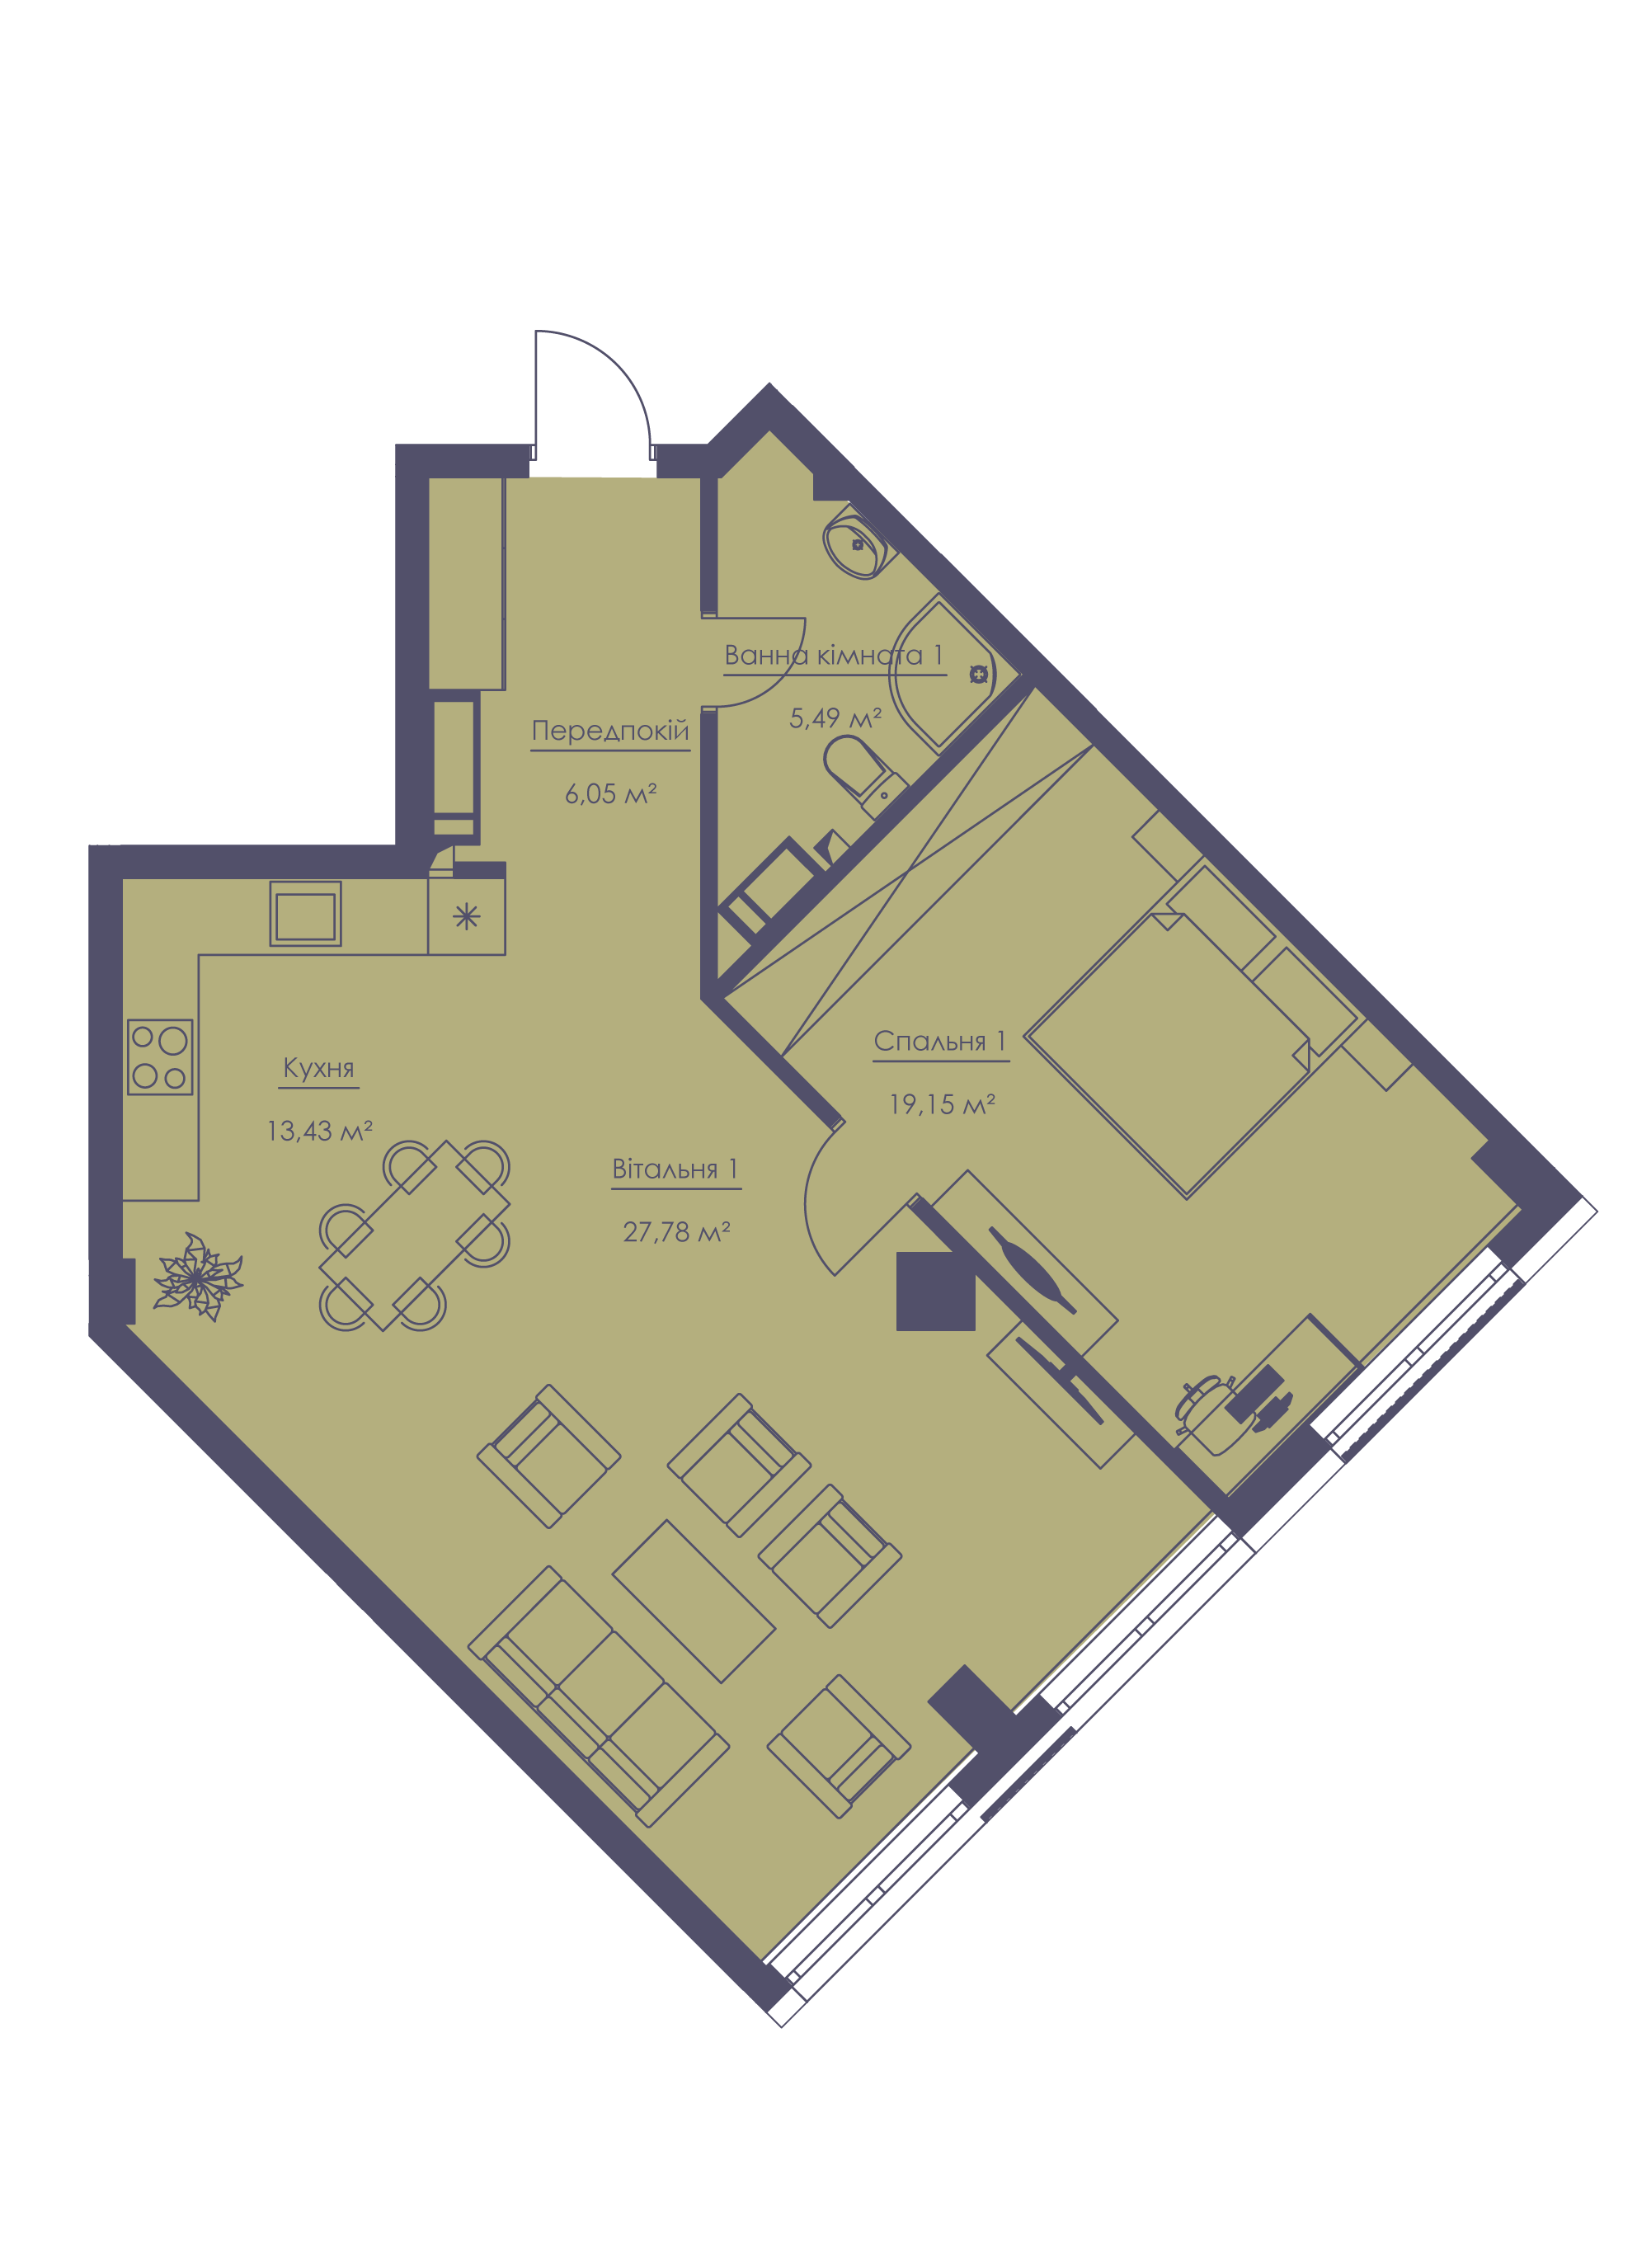 Apartment layout KV_25_2.2a_1_1_1-1